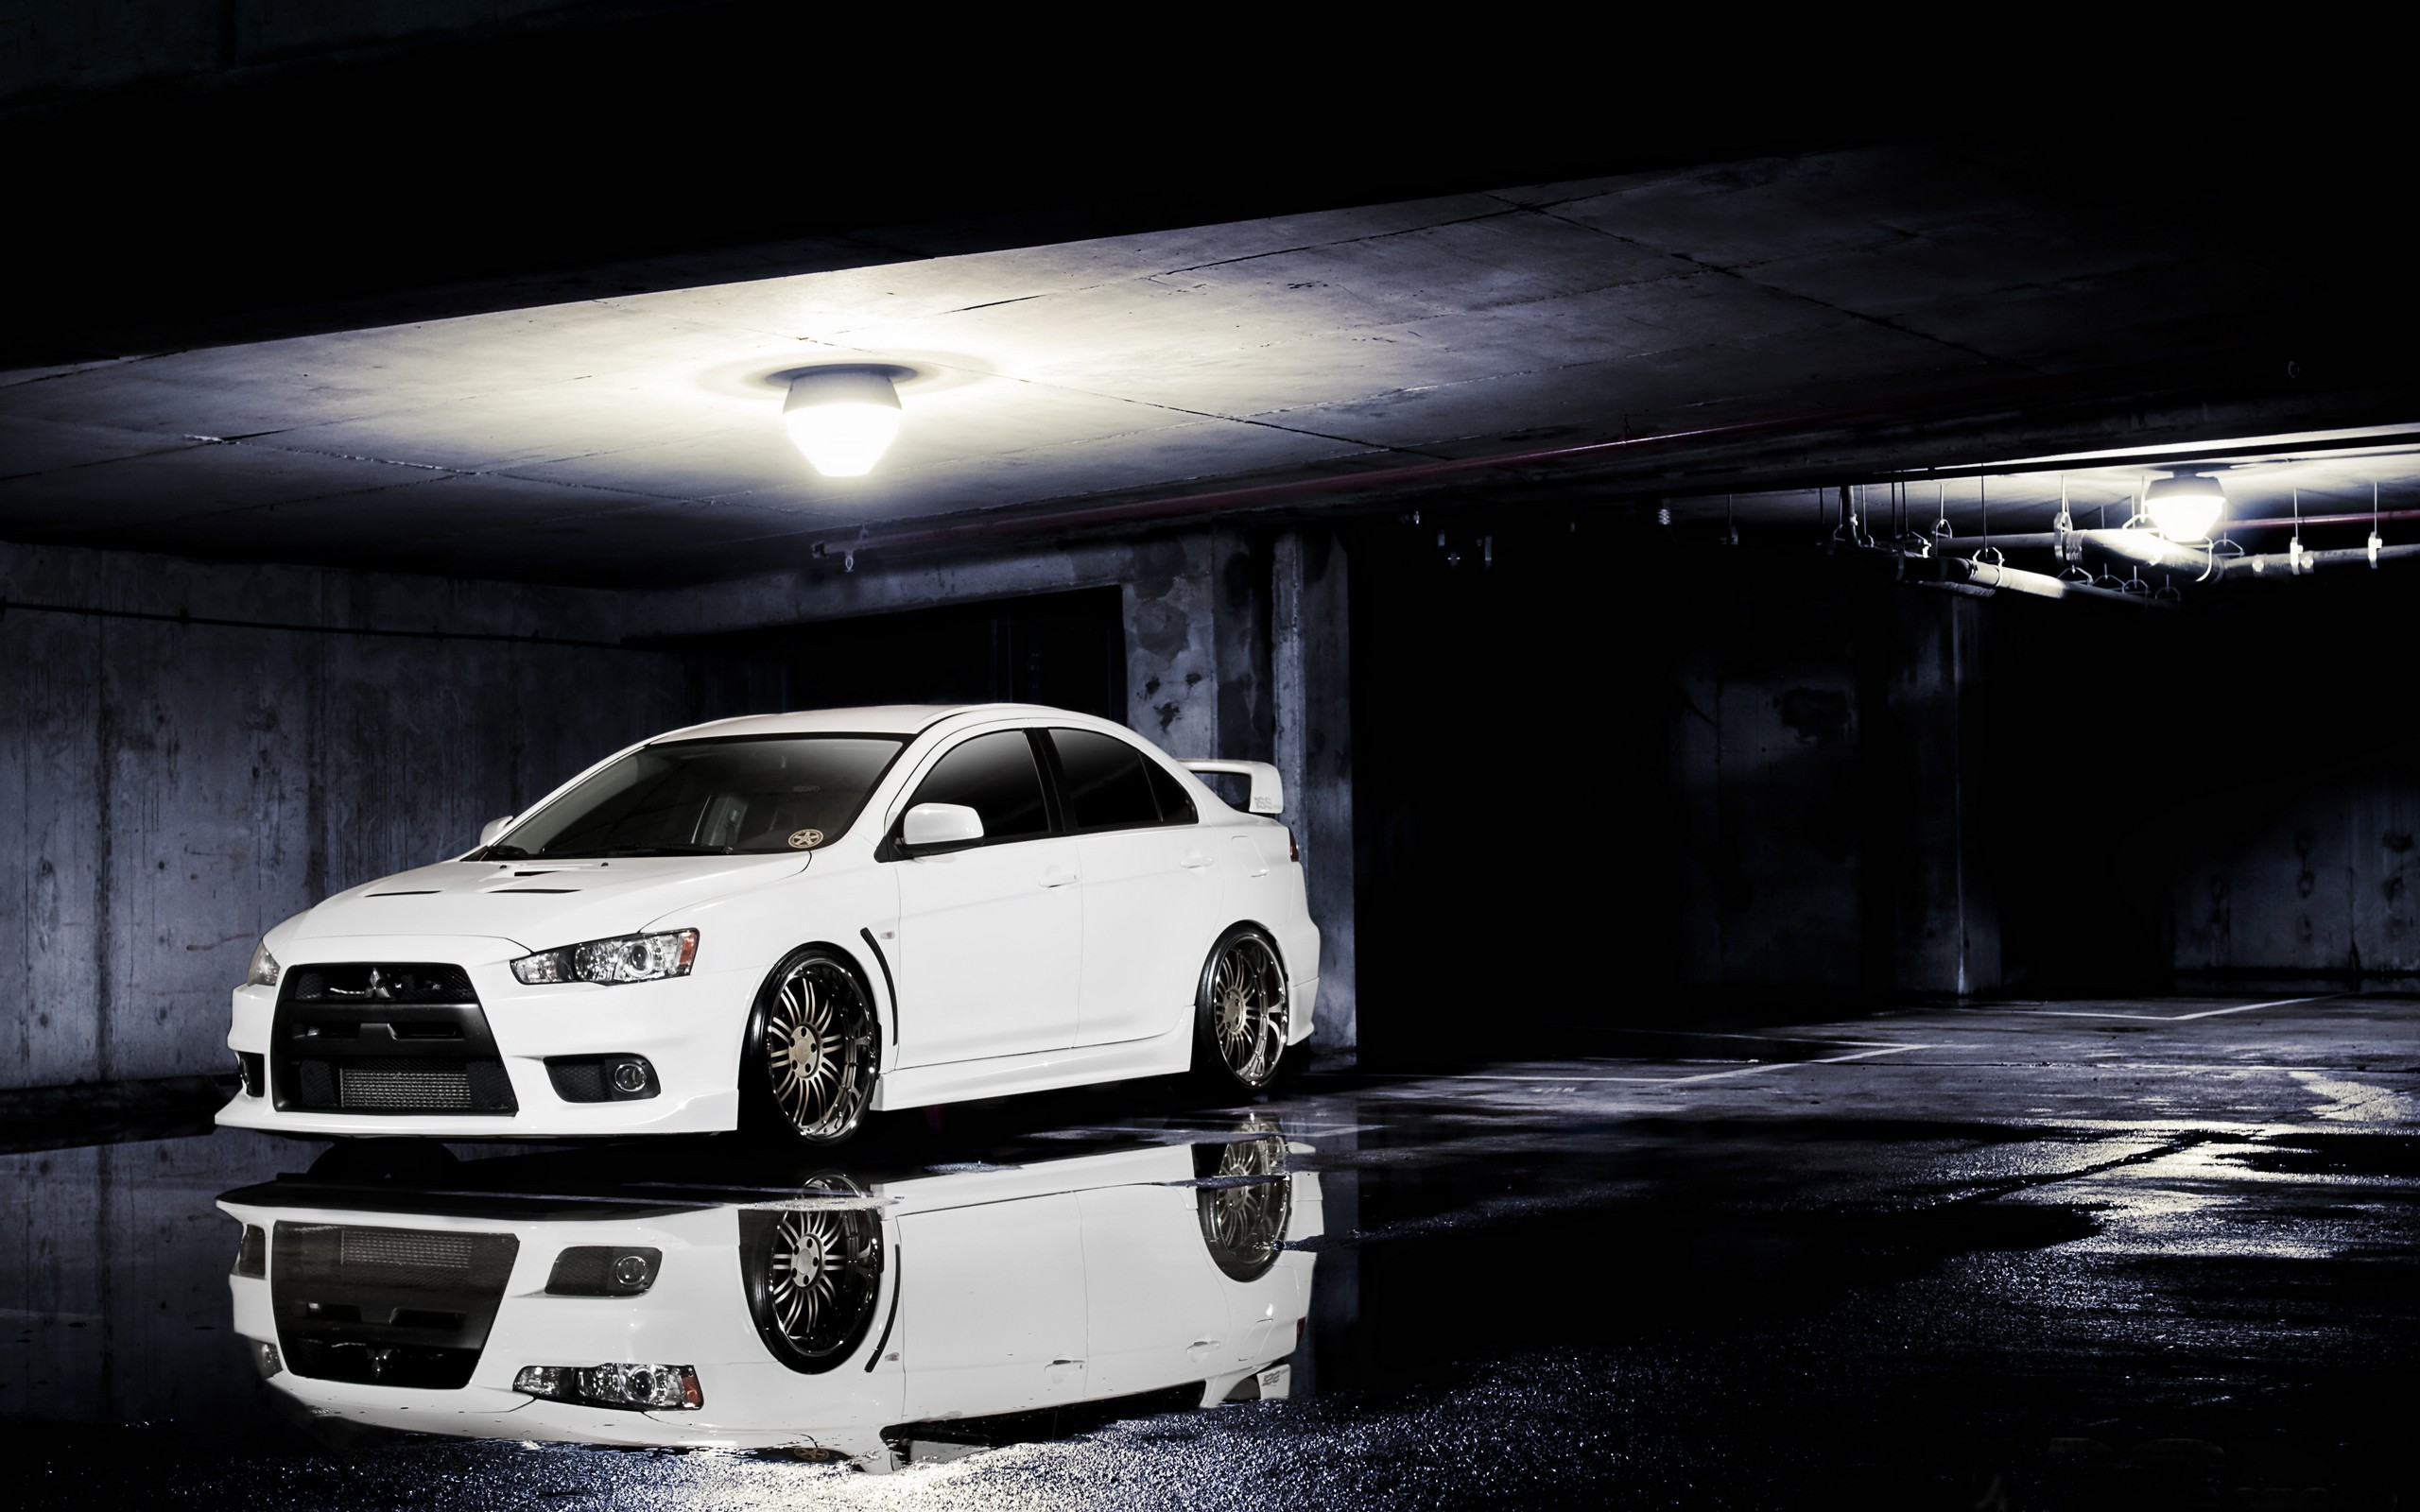 2560x1600 Cars vehicles Mitsubishi Lancer Evolution X wallpaper |  | 201097  | WallpaperUP